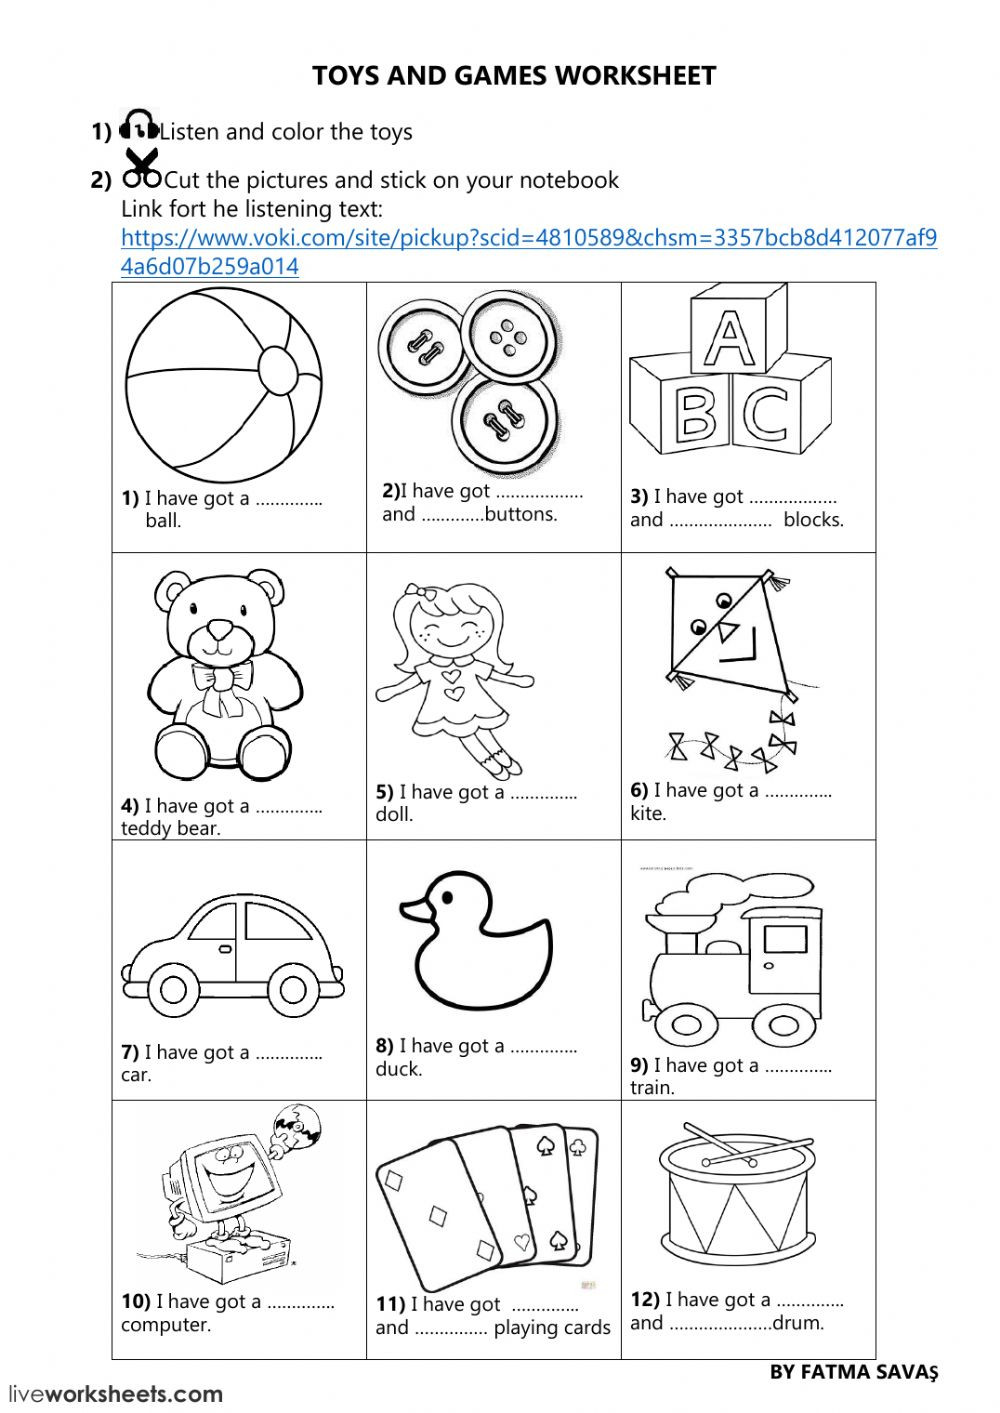 3rd Grade Art Worksheets 3rd Grade Unit 5 toys and Games Online Worksheet